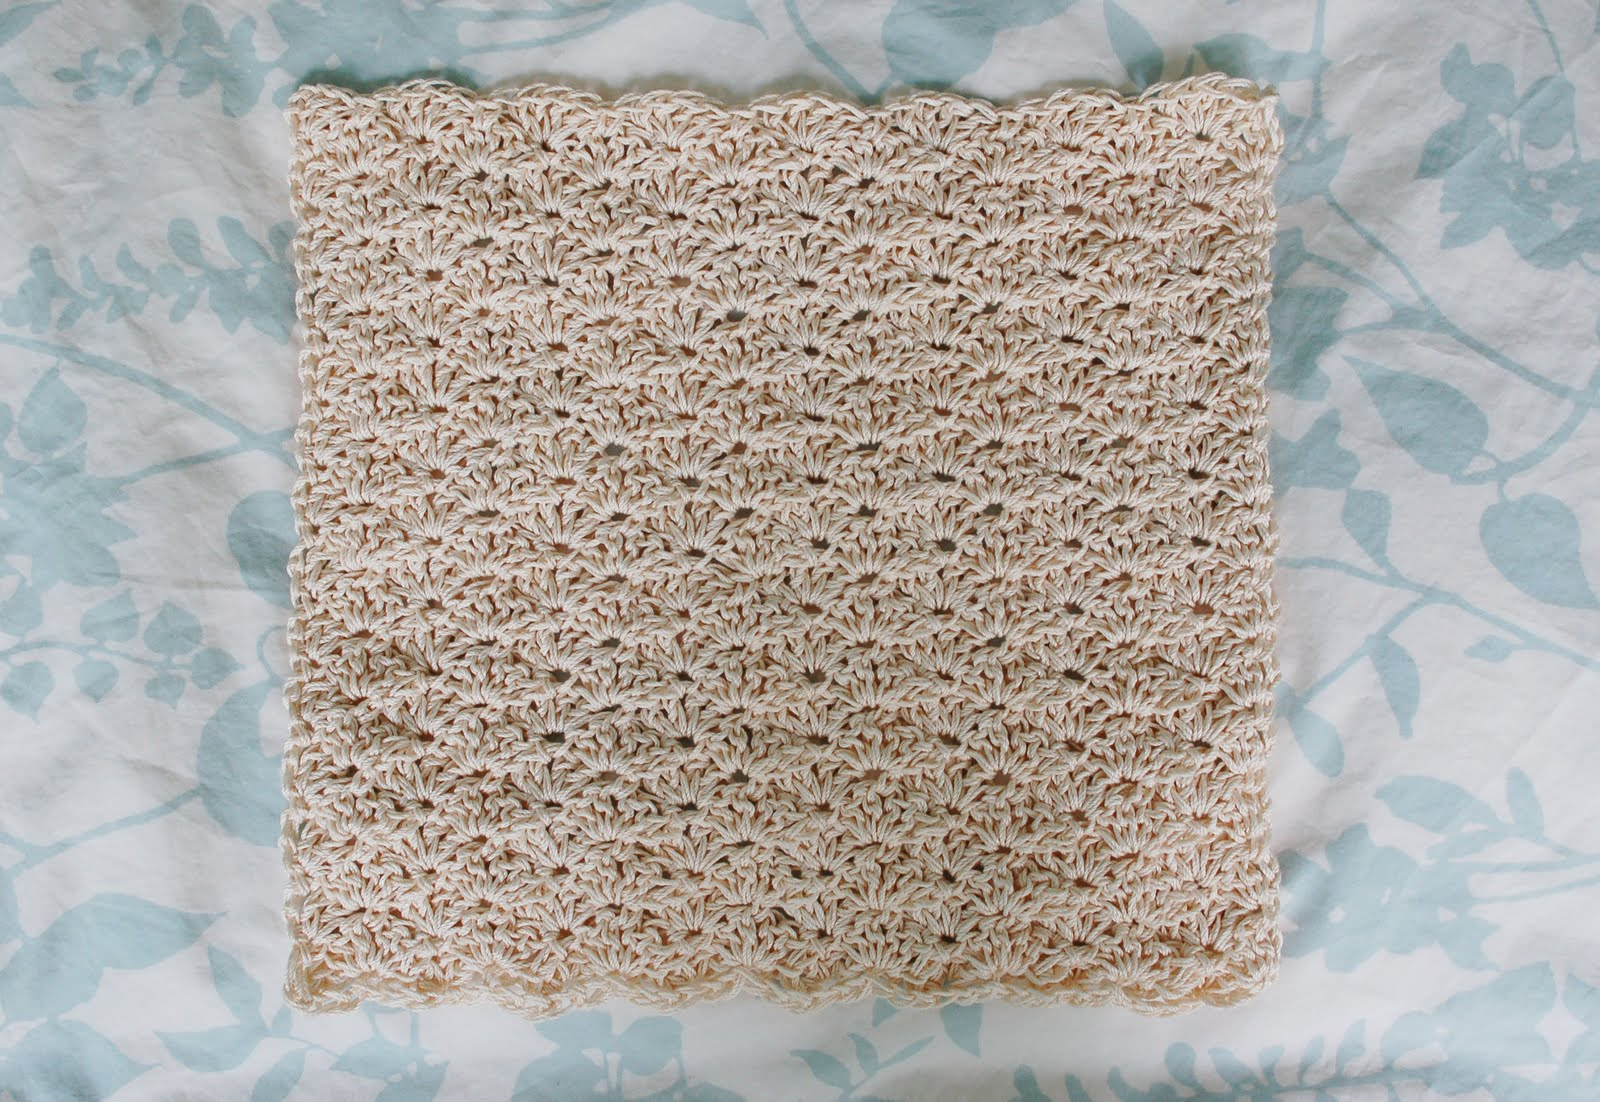 Crochet Patterns Using Thread : find washcloths made with regular cotton yarn too thick they don t ...